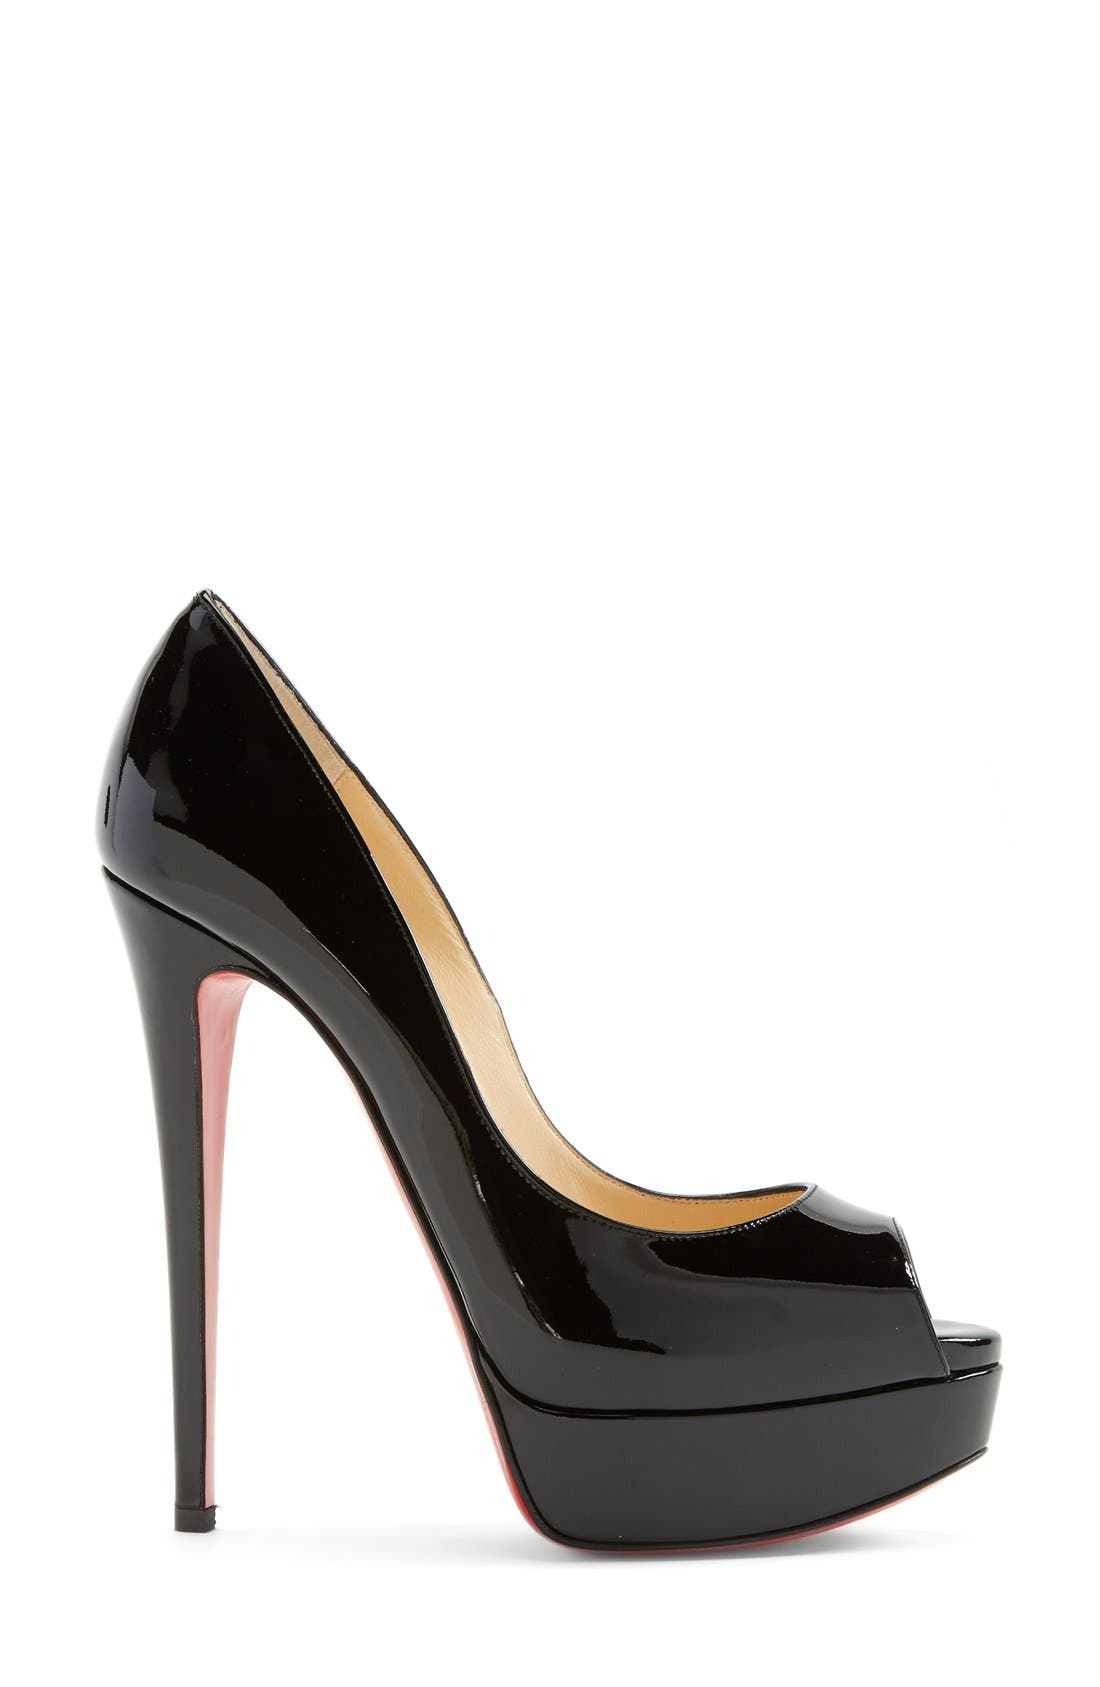 CHRISTIAN LOUBOUTIN,                             'Lady Peep' Open Toe Pump,                             Alternate thumbnail 3, color,                             002